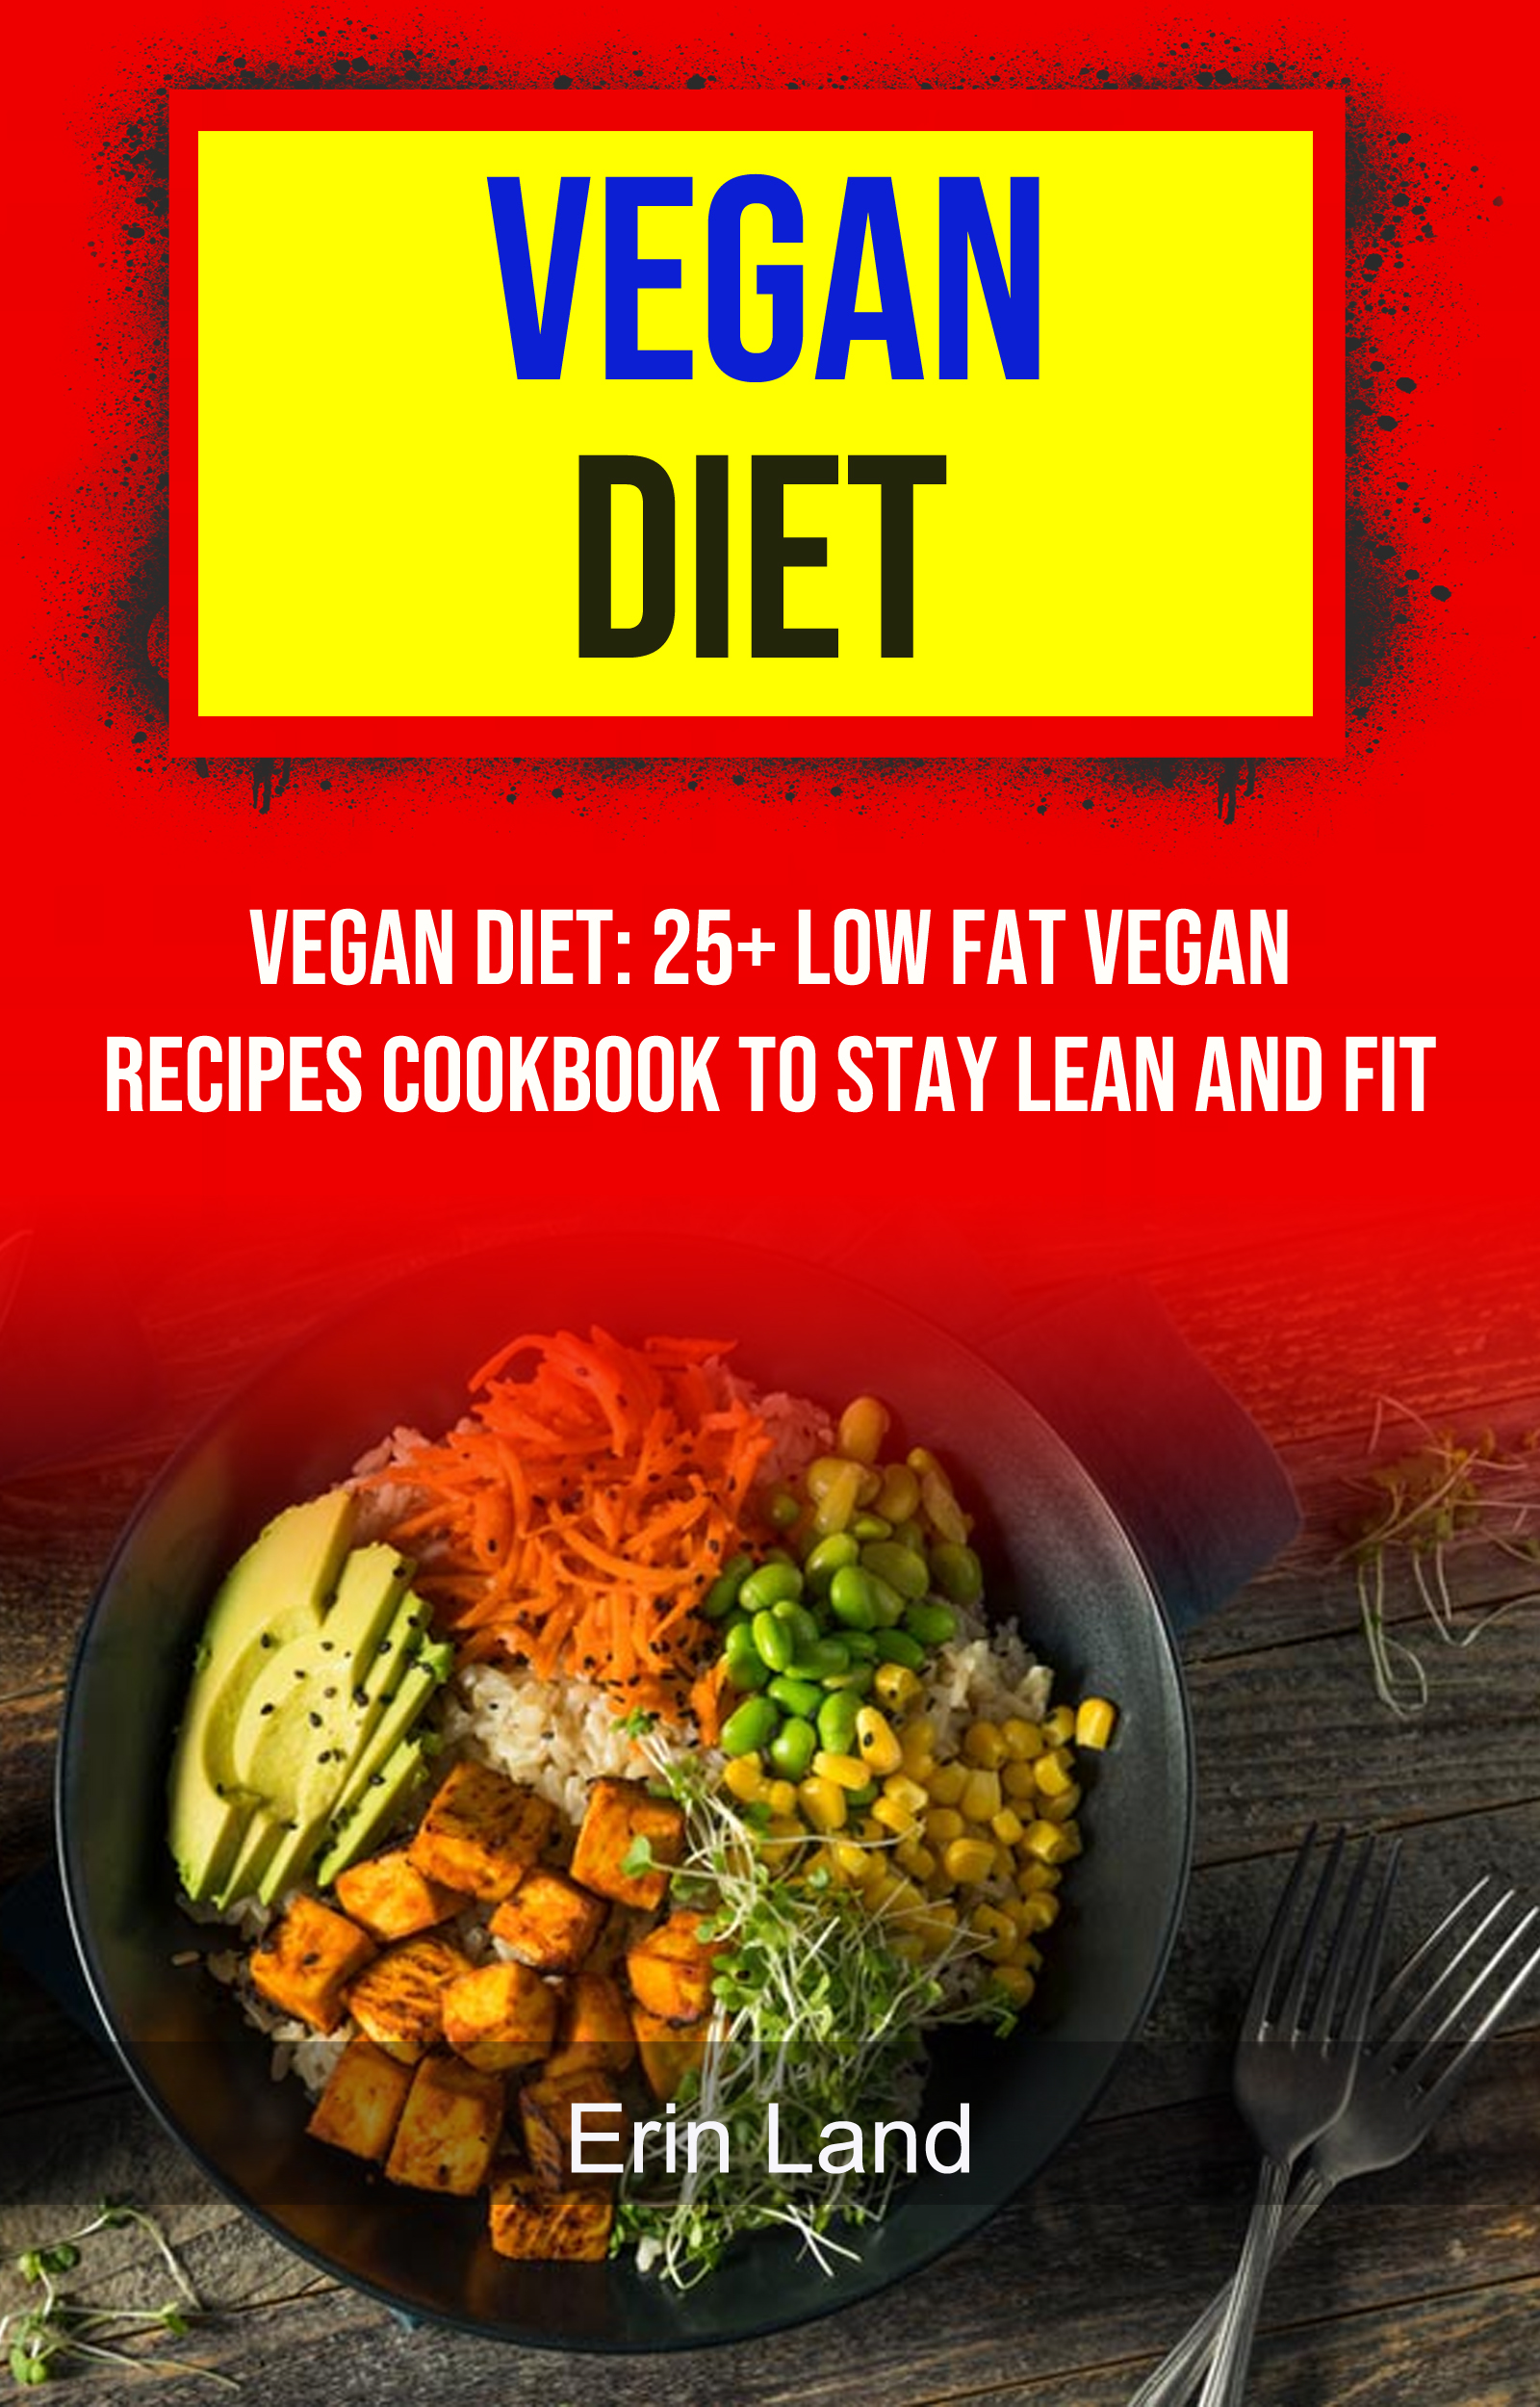 Vegan diet: 25+ low fat vegan recipes cookbook to stay lean and fit